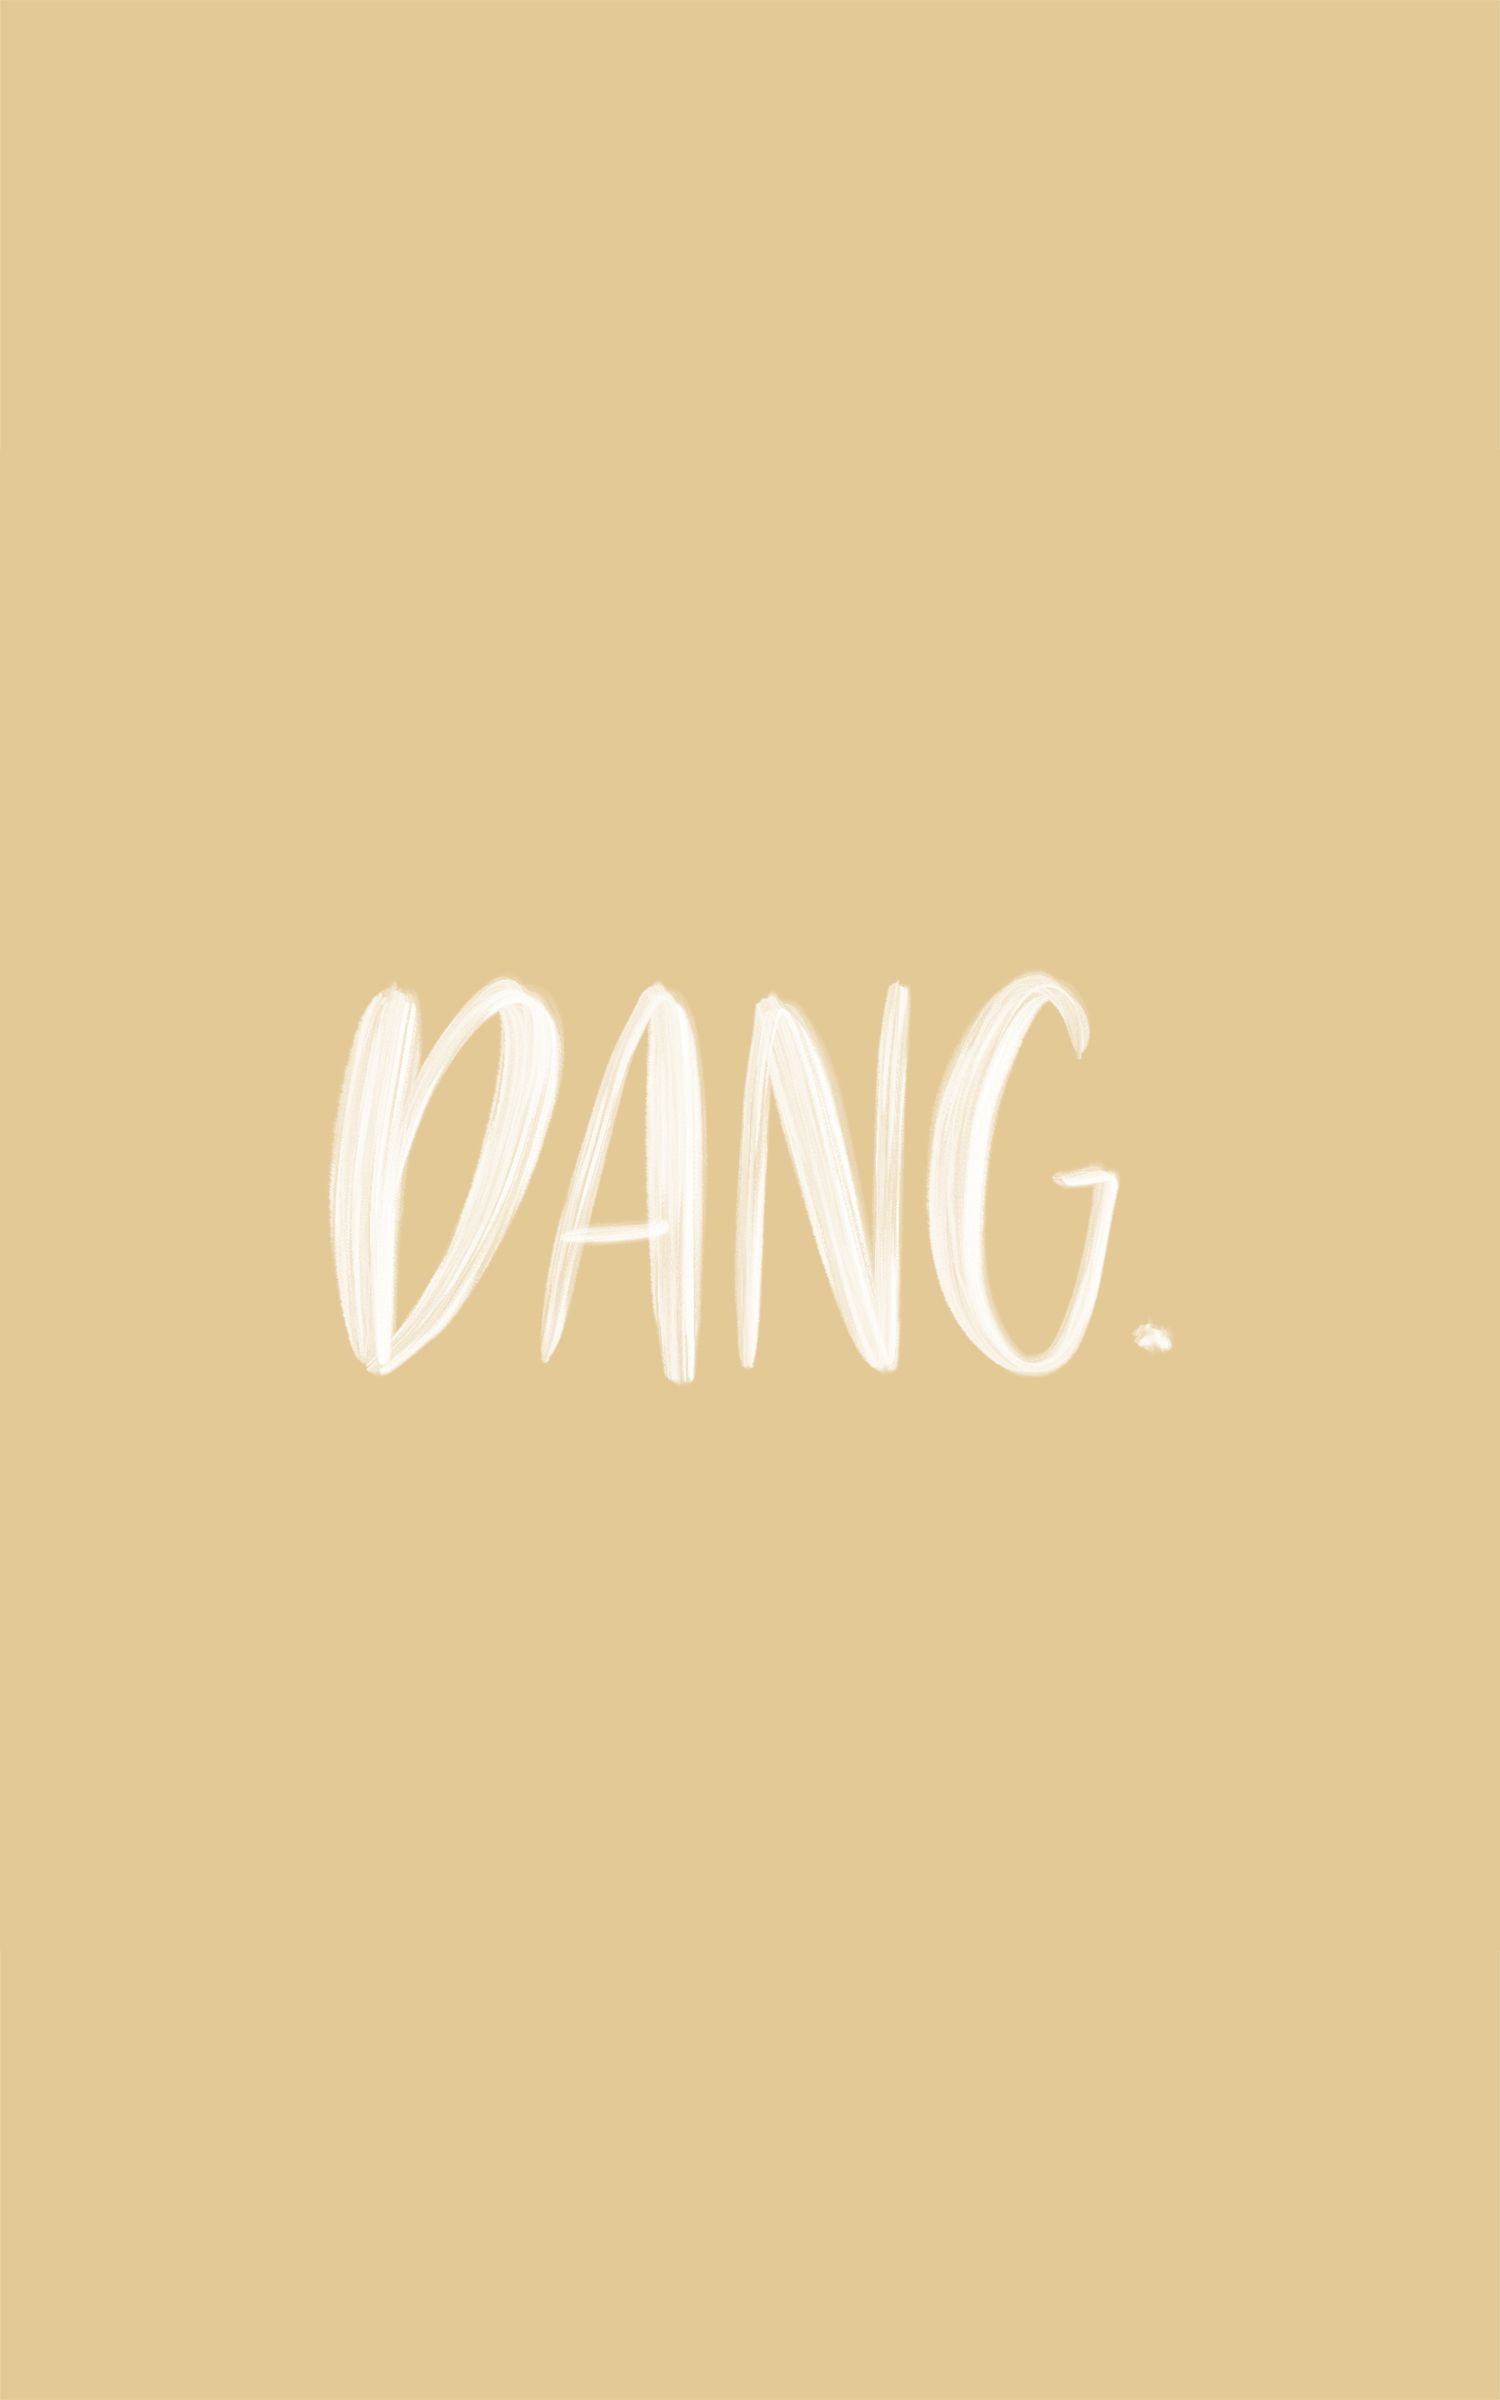 Dang Calligraphy Quote Handlettering Just Saying Calligraphy